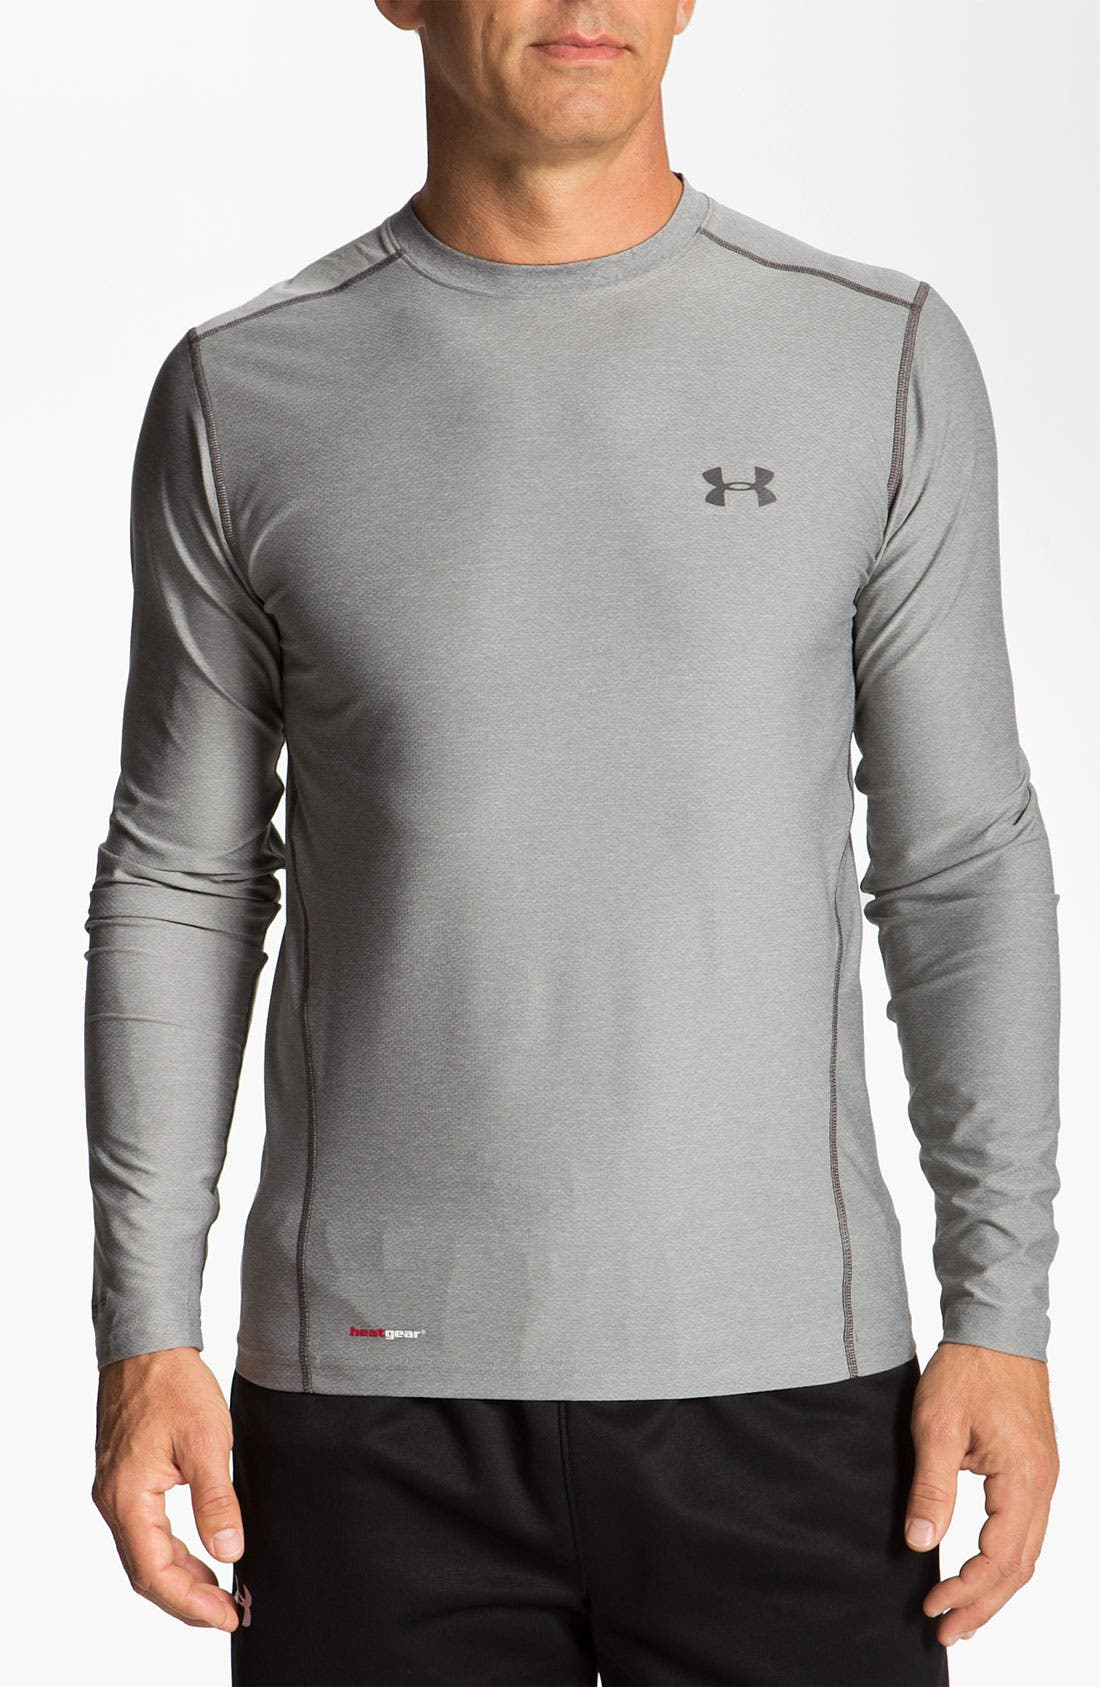 Alternate Image 1 Selected - Under Armour HeatGear™ Fitted Long Sleeve T-Shirt (Online Exclusive)